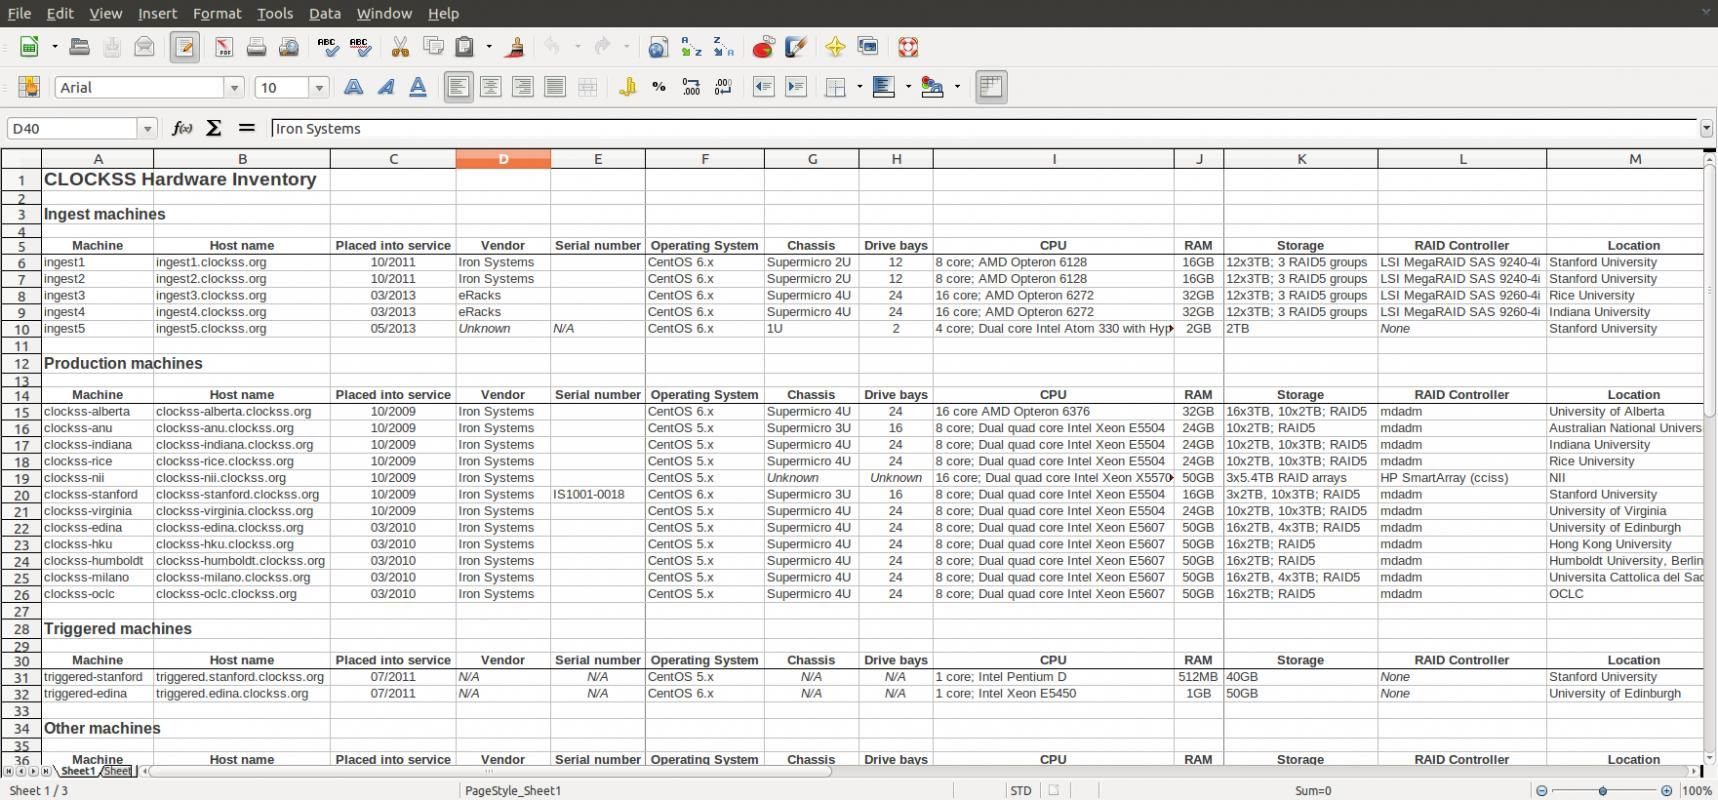 Bill Of Material Invoice Templates 5 Free Xlsx Docs Pdf Invoice Example Invoice Template Word Invoice Template